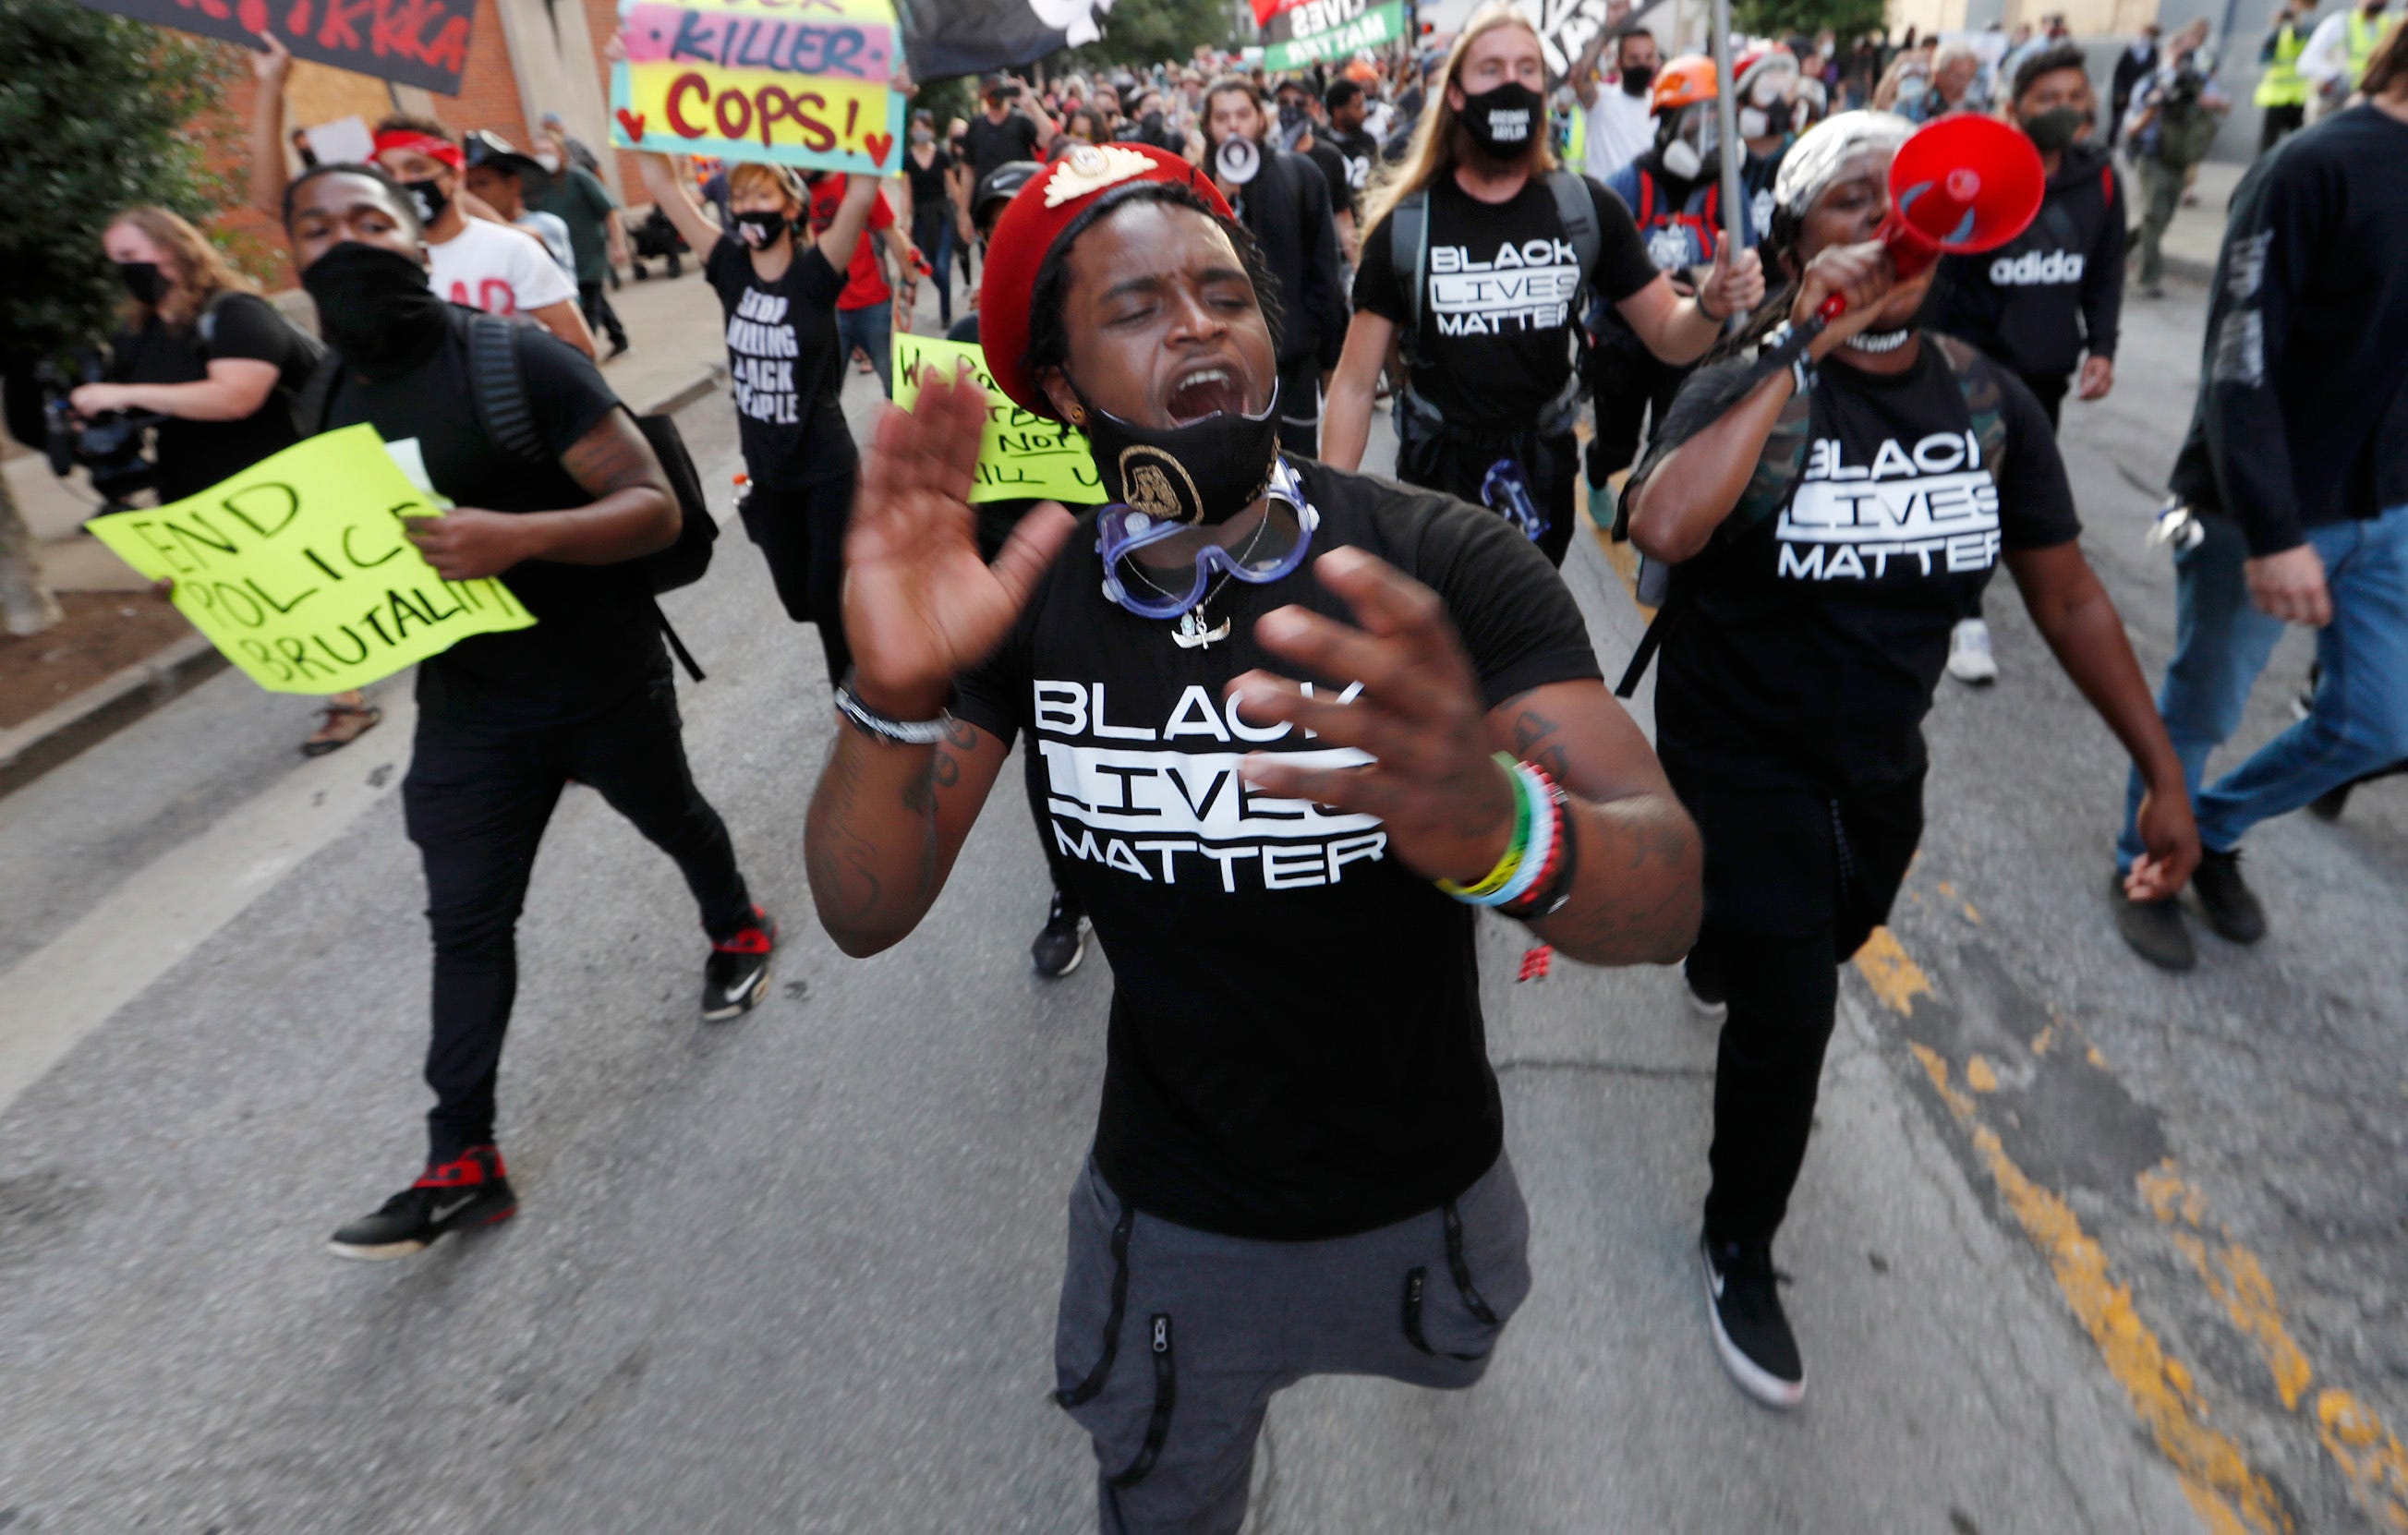 Breonna Taylor protests: Hundreds disperse in Louisville after curfew, car burned; 2 injured in Calif. protest